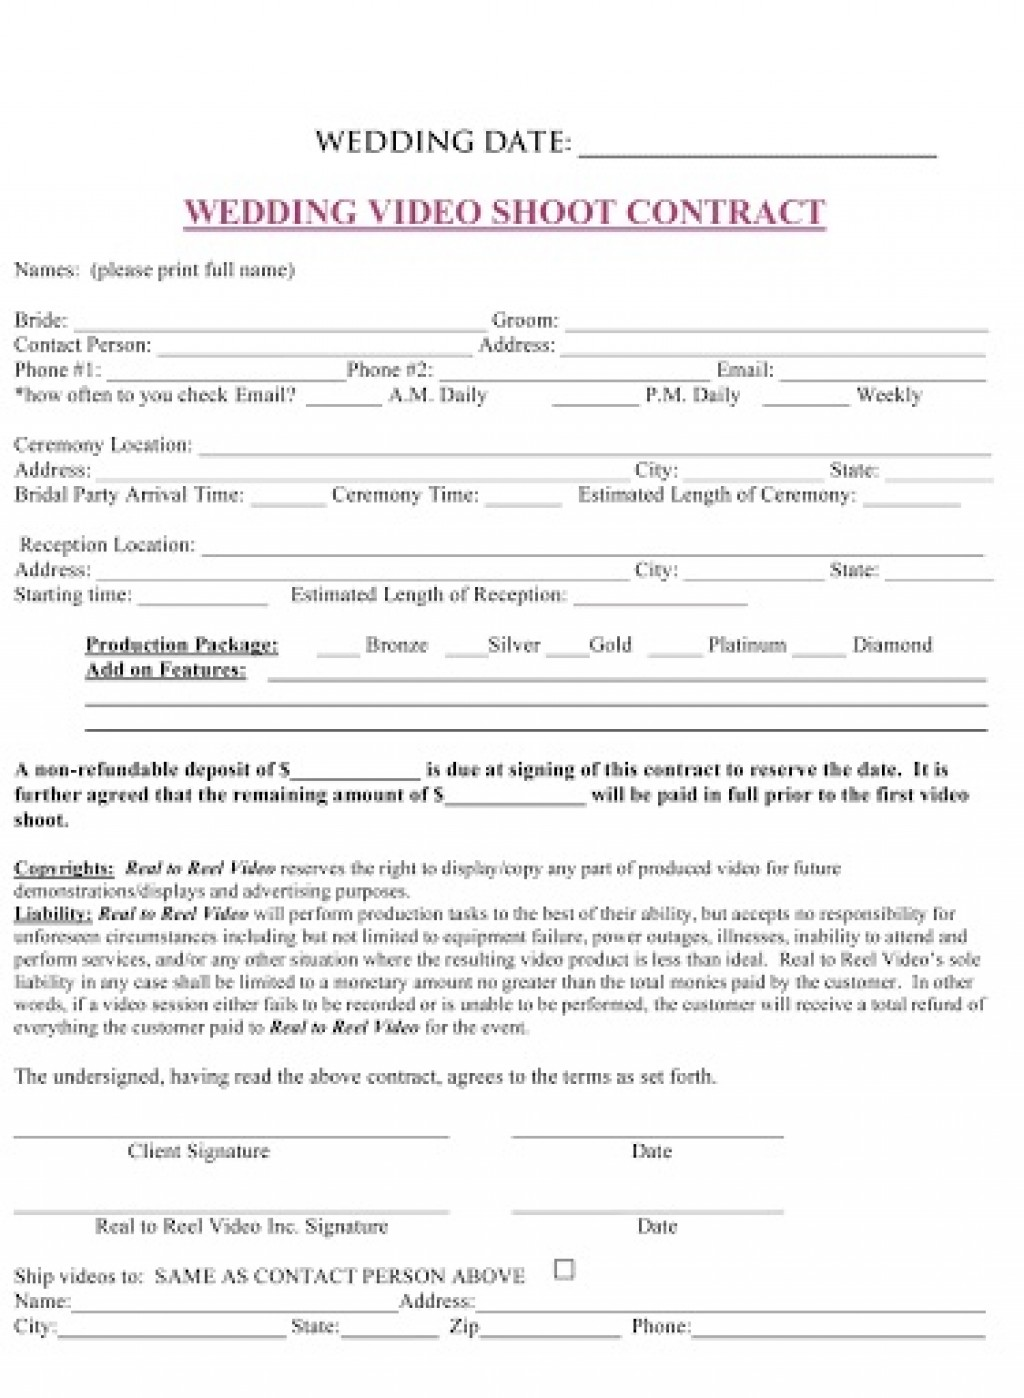 009 Sensational Wedding Videography Contract Template Concept  FreeLarge